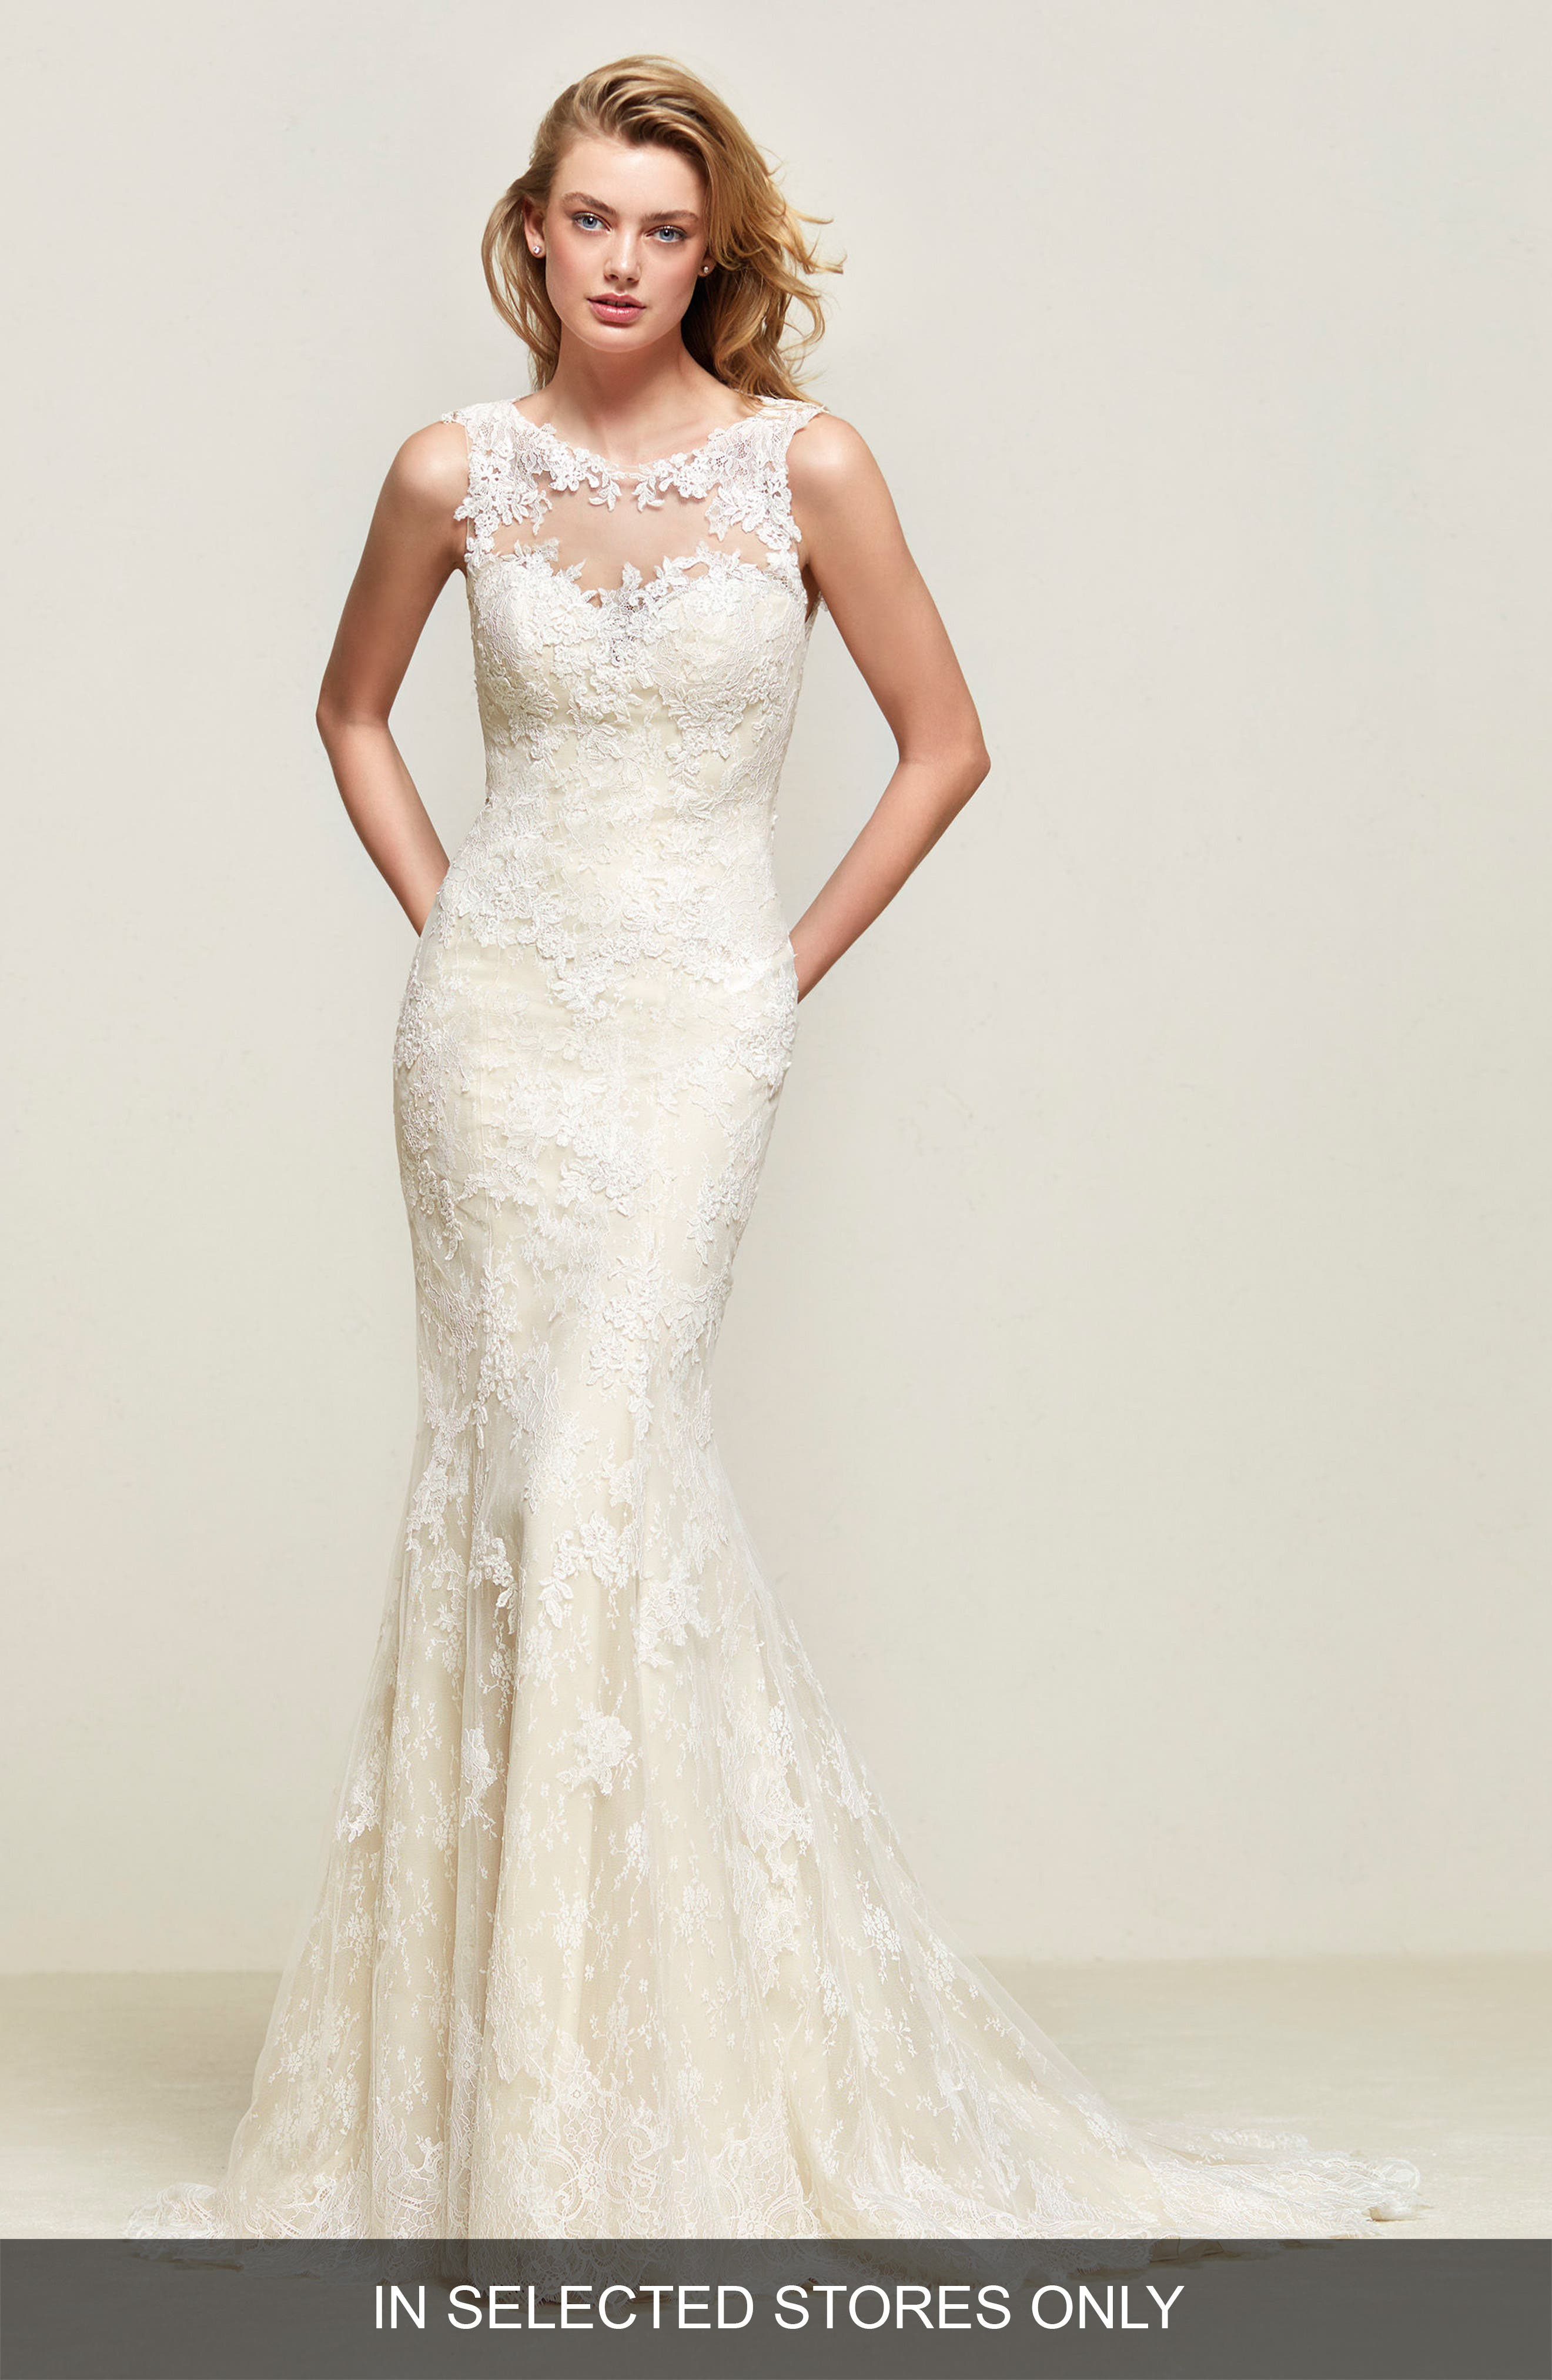 Alternate Image 1 Selected - Pronovias Driades Embellished Lace Mermaid Gown